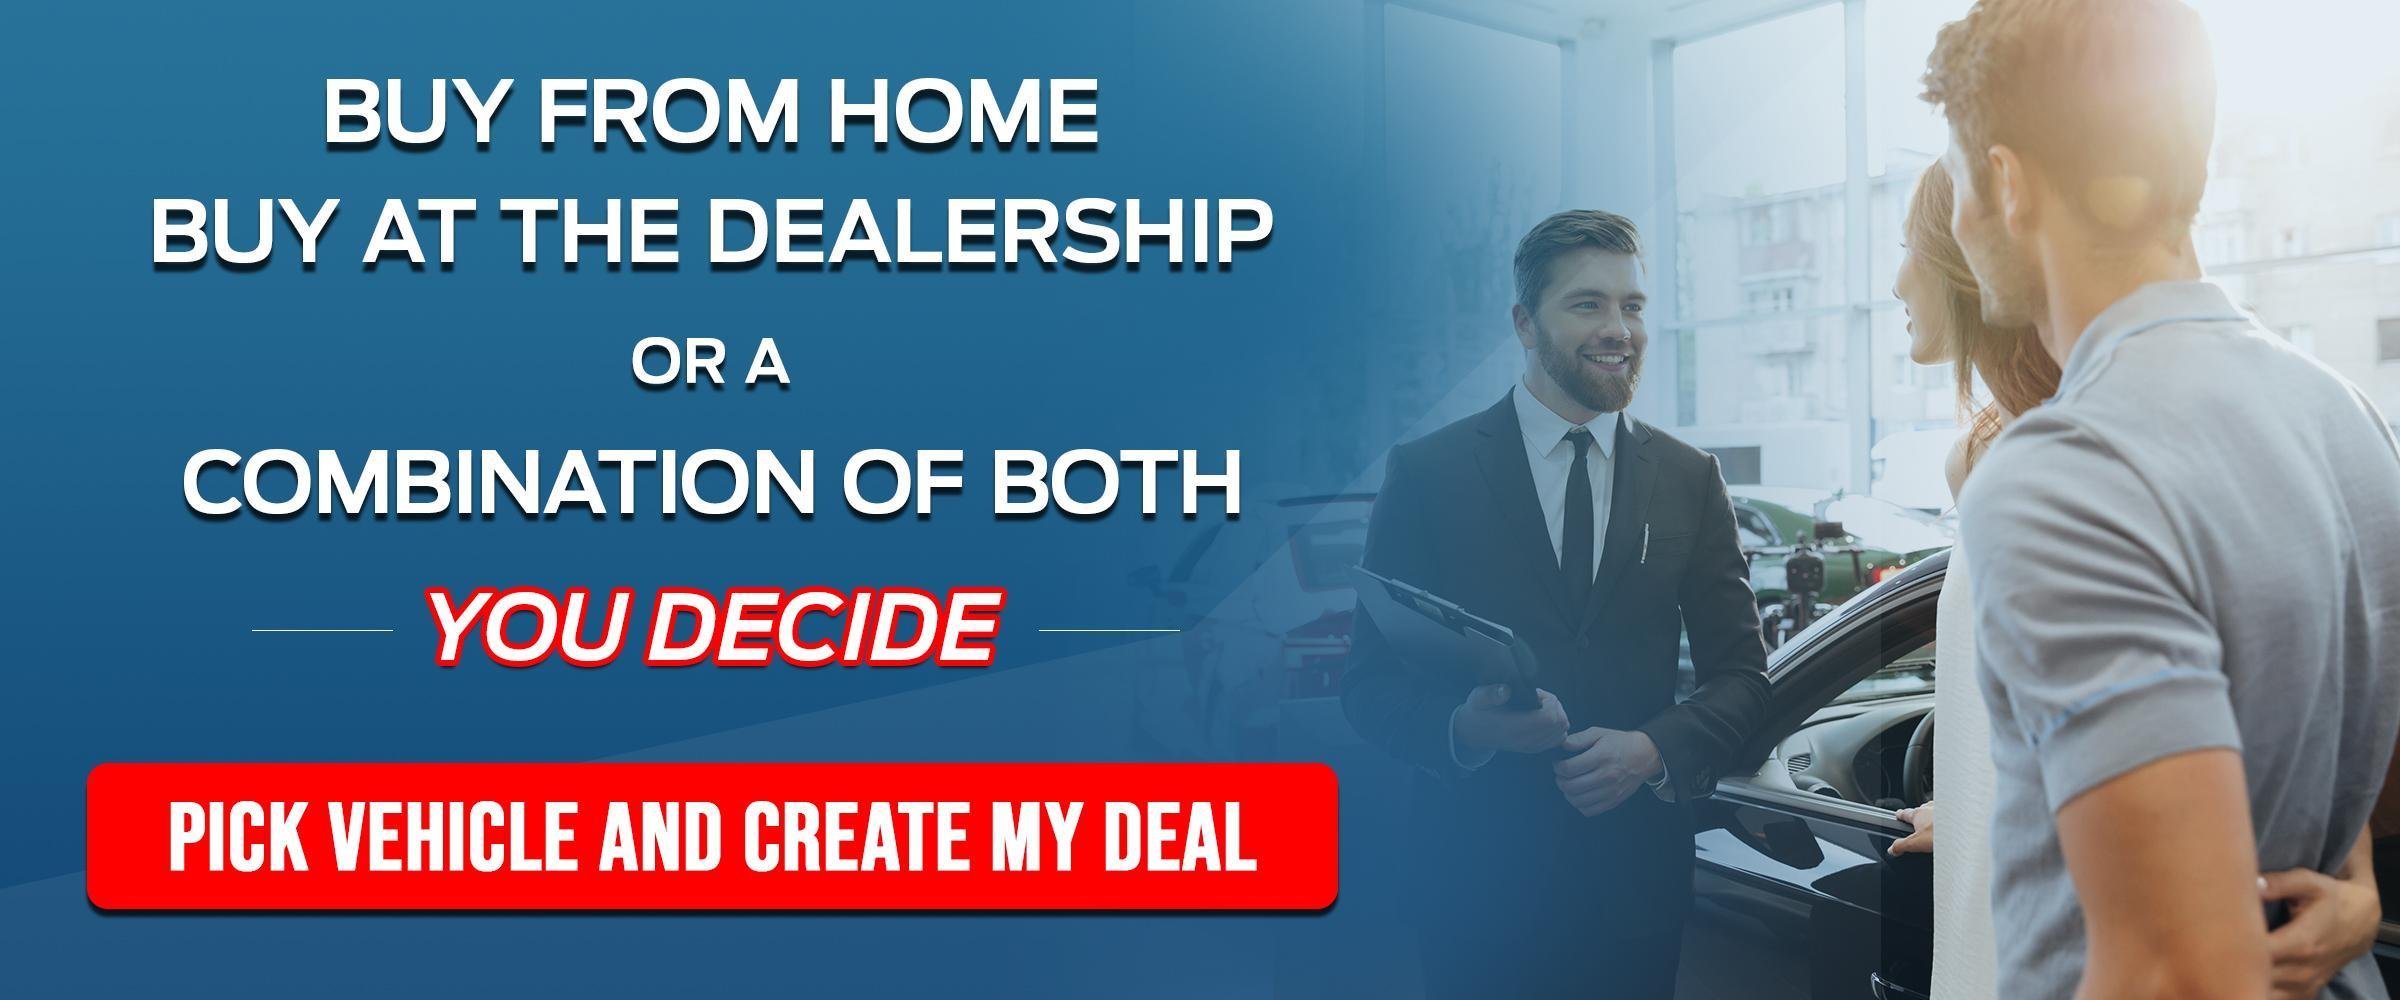 Buy From Home Banner